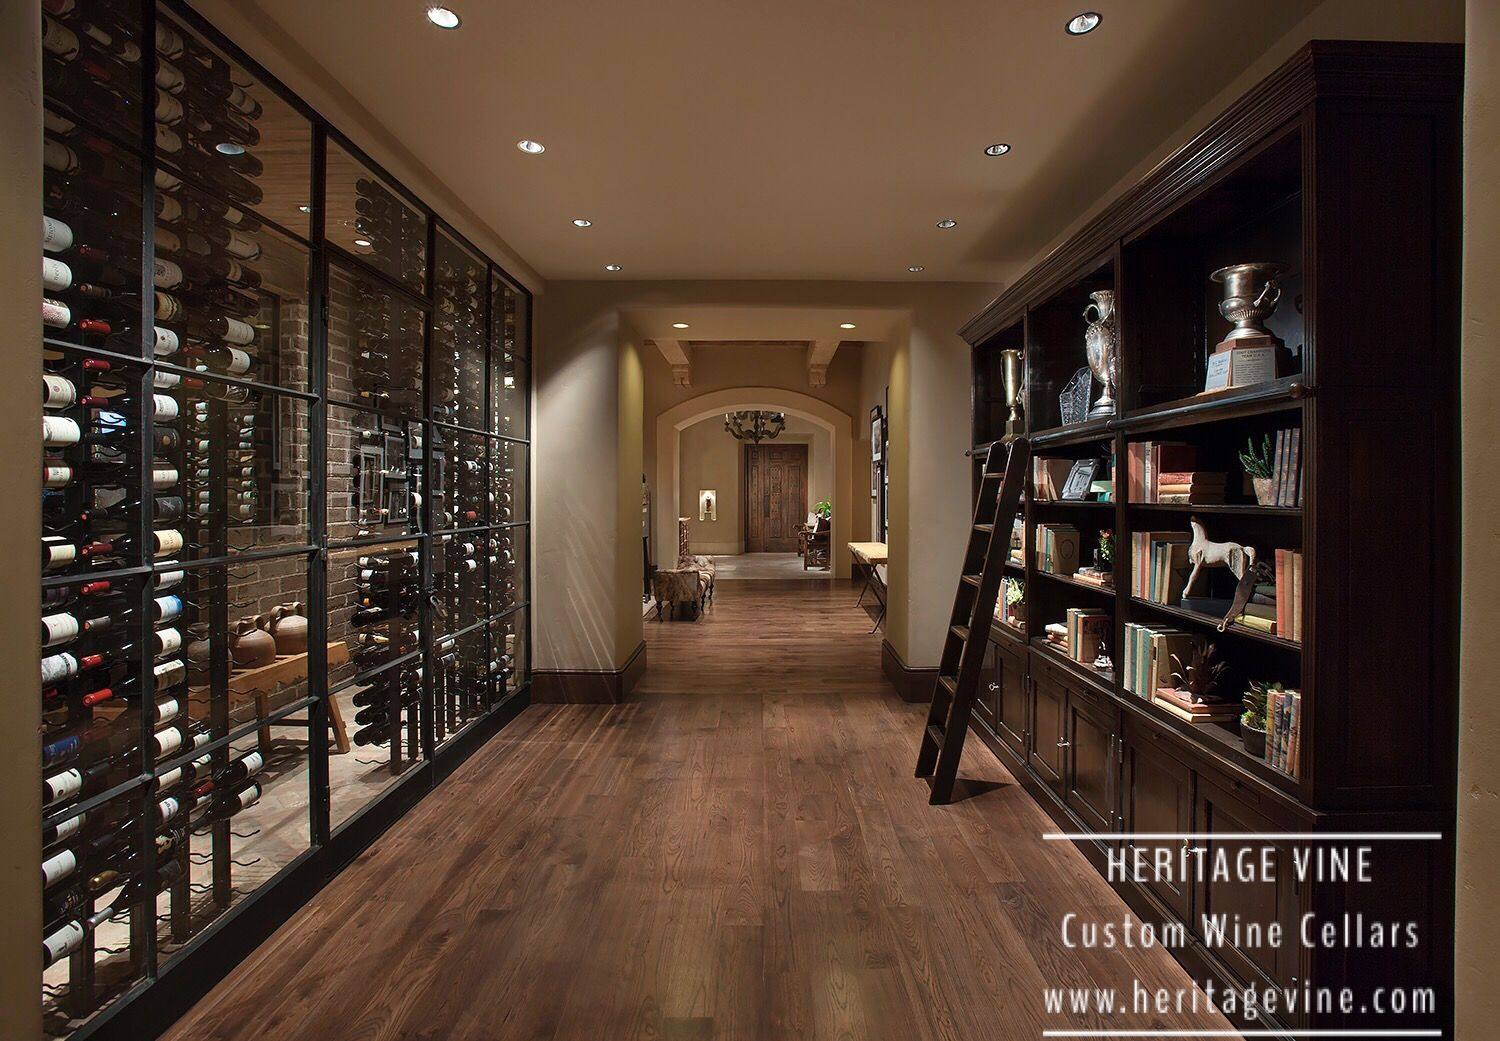 Custom Wine Cellars Custom Wine Cellars Wine Cellar Design Cellar Design